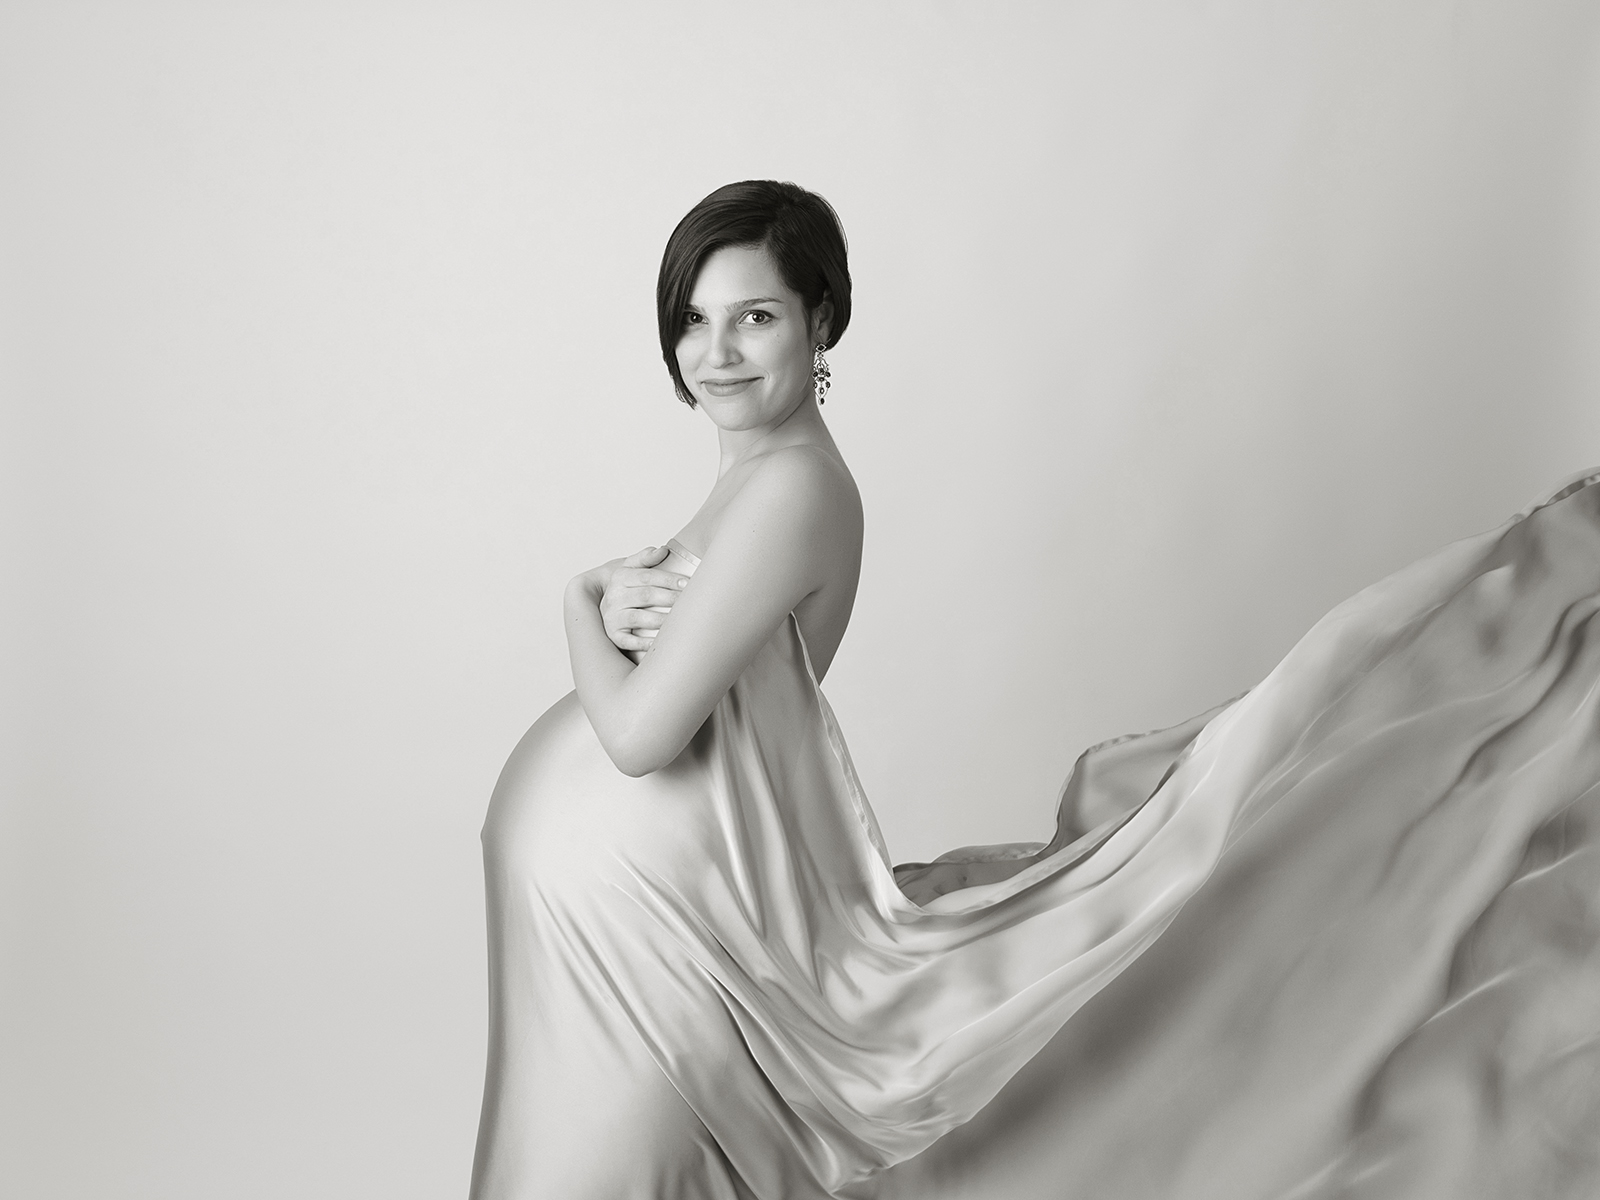 pregnancy-maternity-photography-Nemi-Miller_1